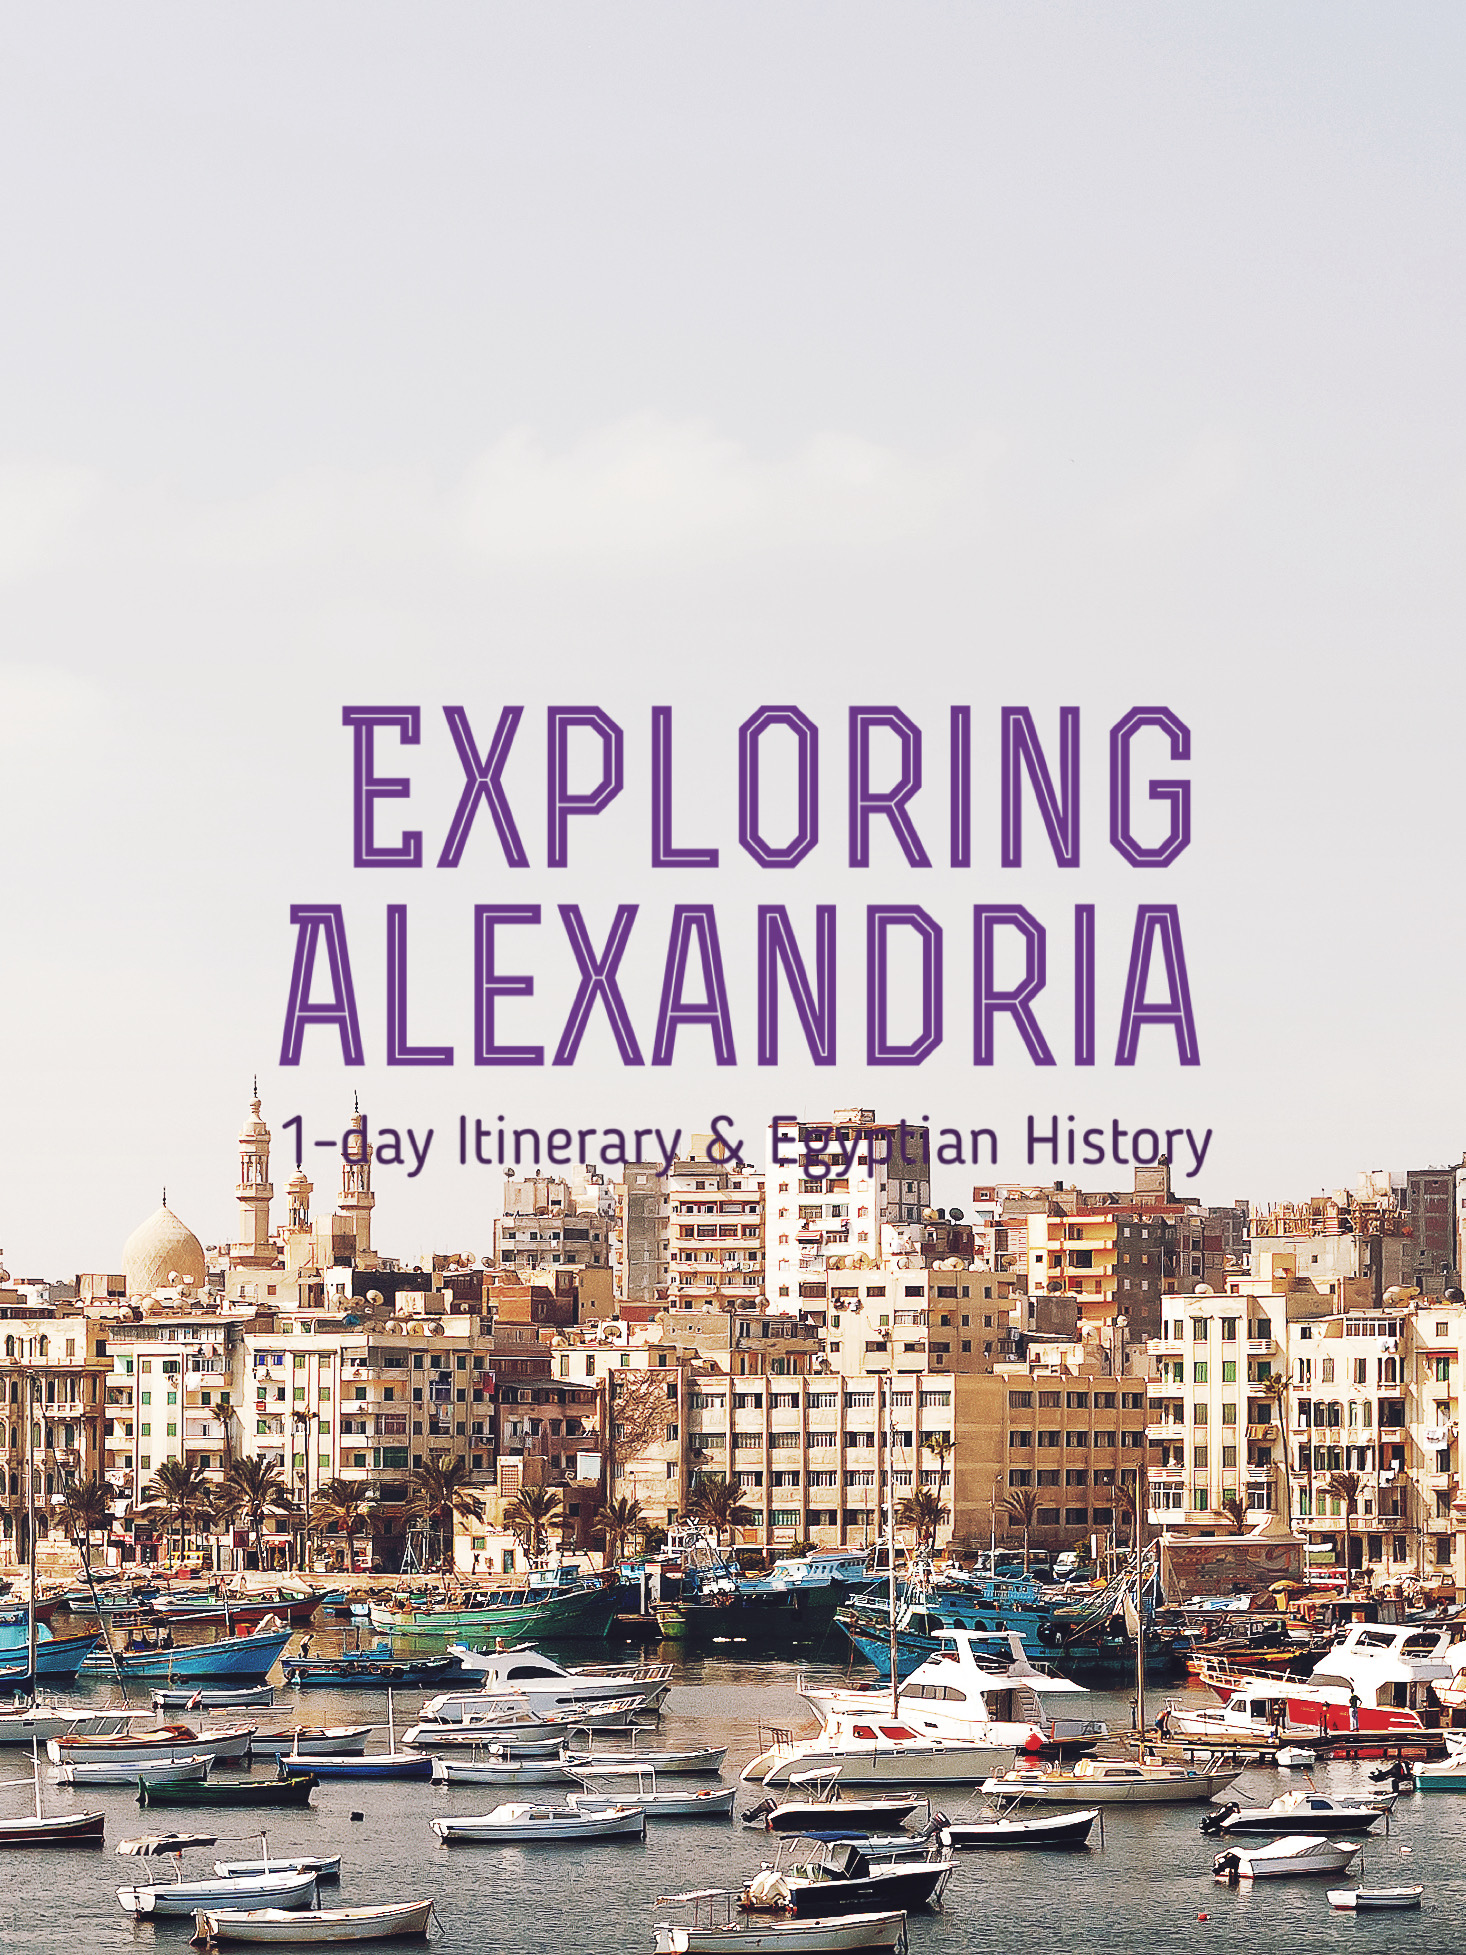 Alexandria: Connecting Europe to Africa